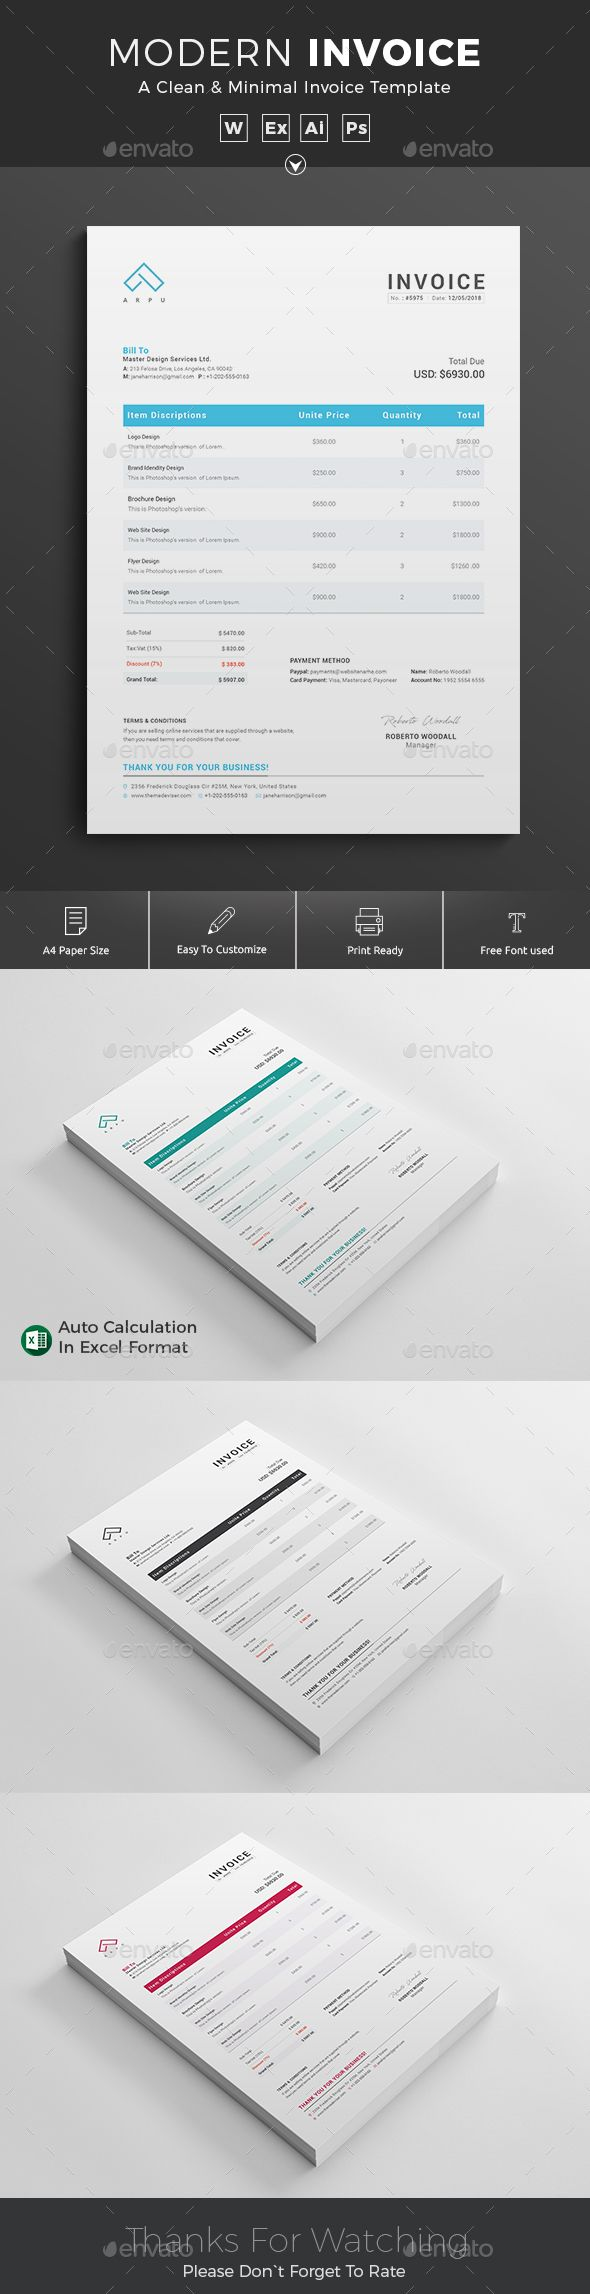 Ms Word Proposal Template Invoice Template Psd Ai Ms Word  Proposal & Invoice Templates .